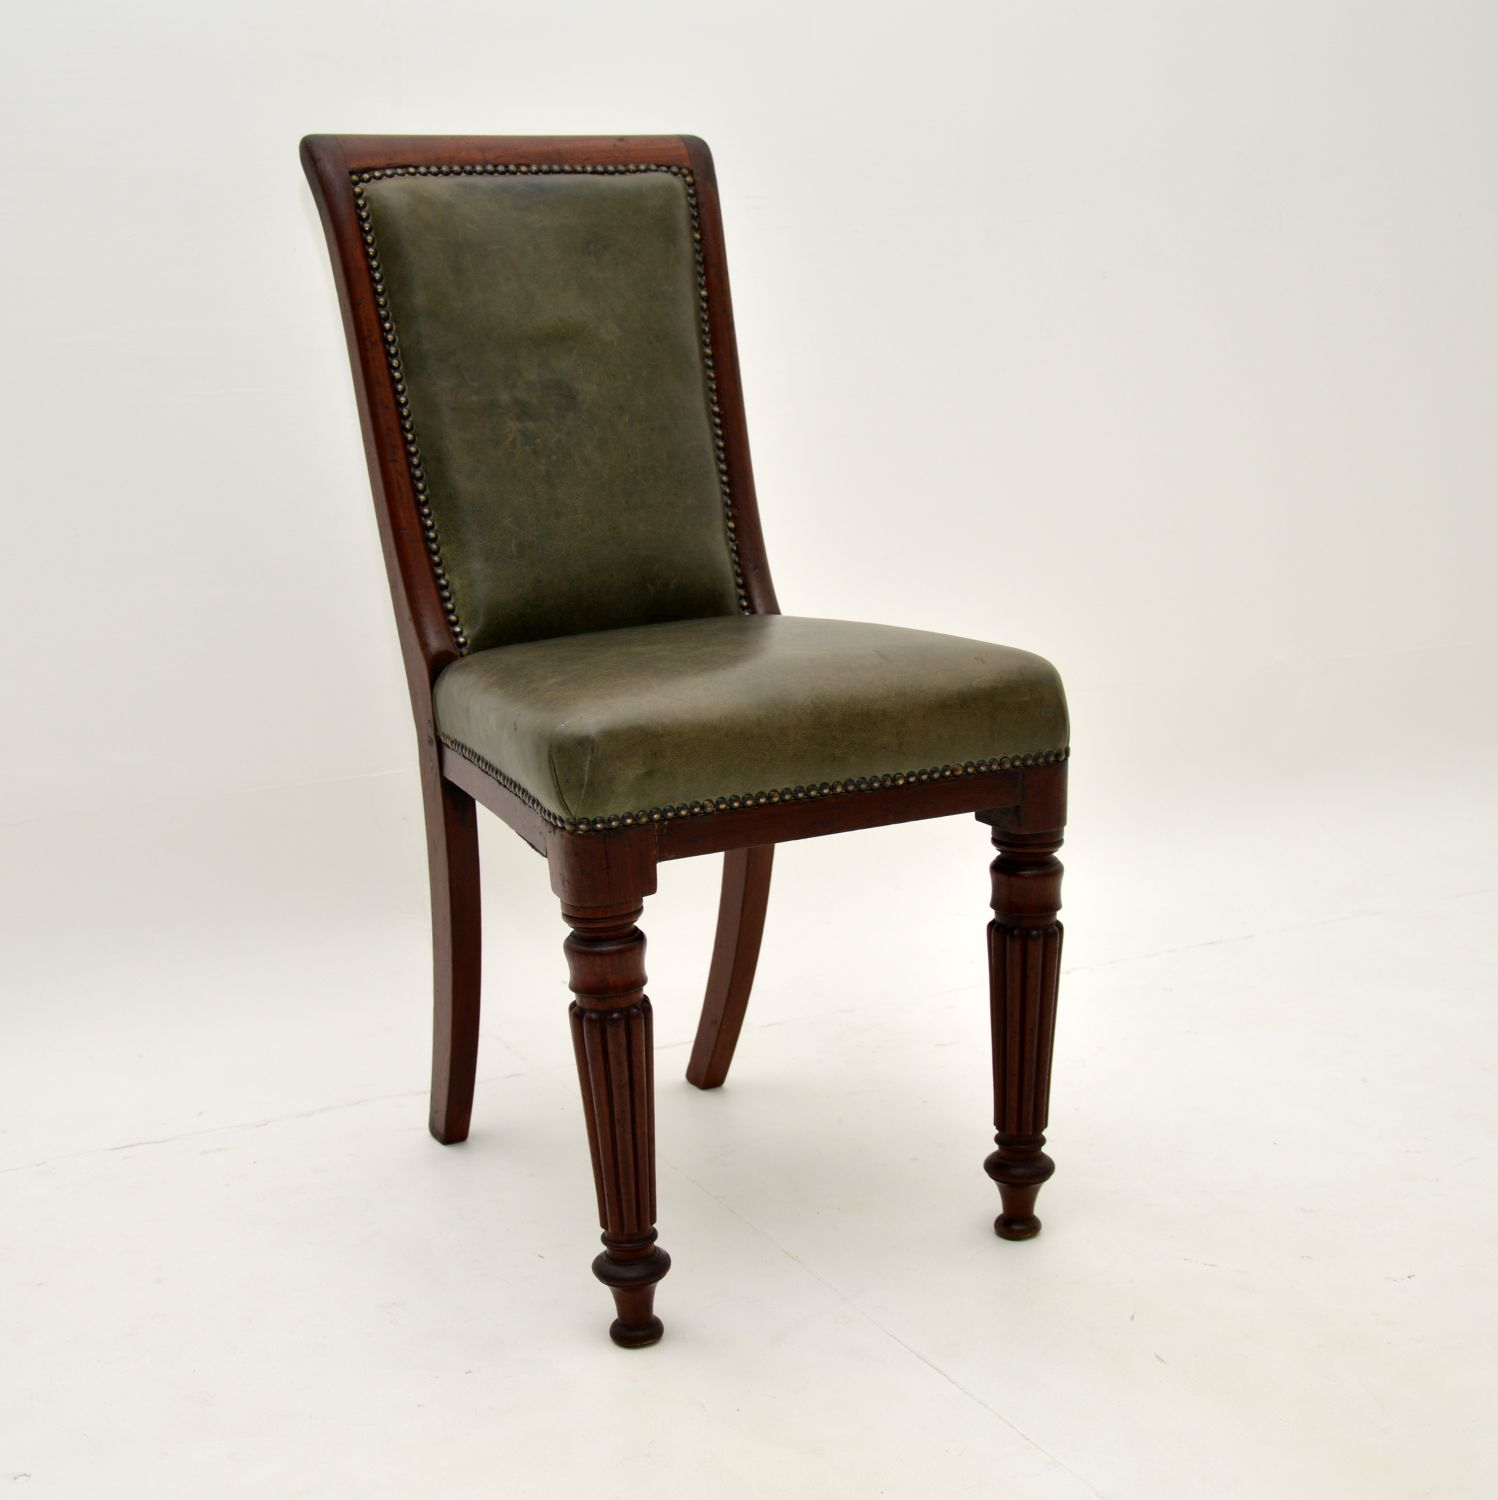 antique victorian mahogany leather desk chair side chair